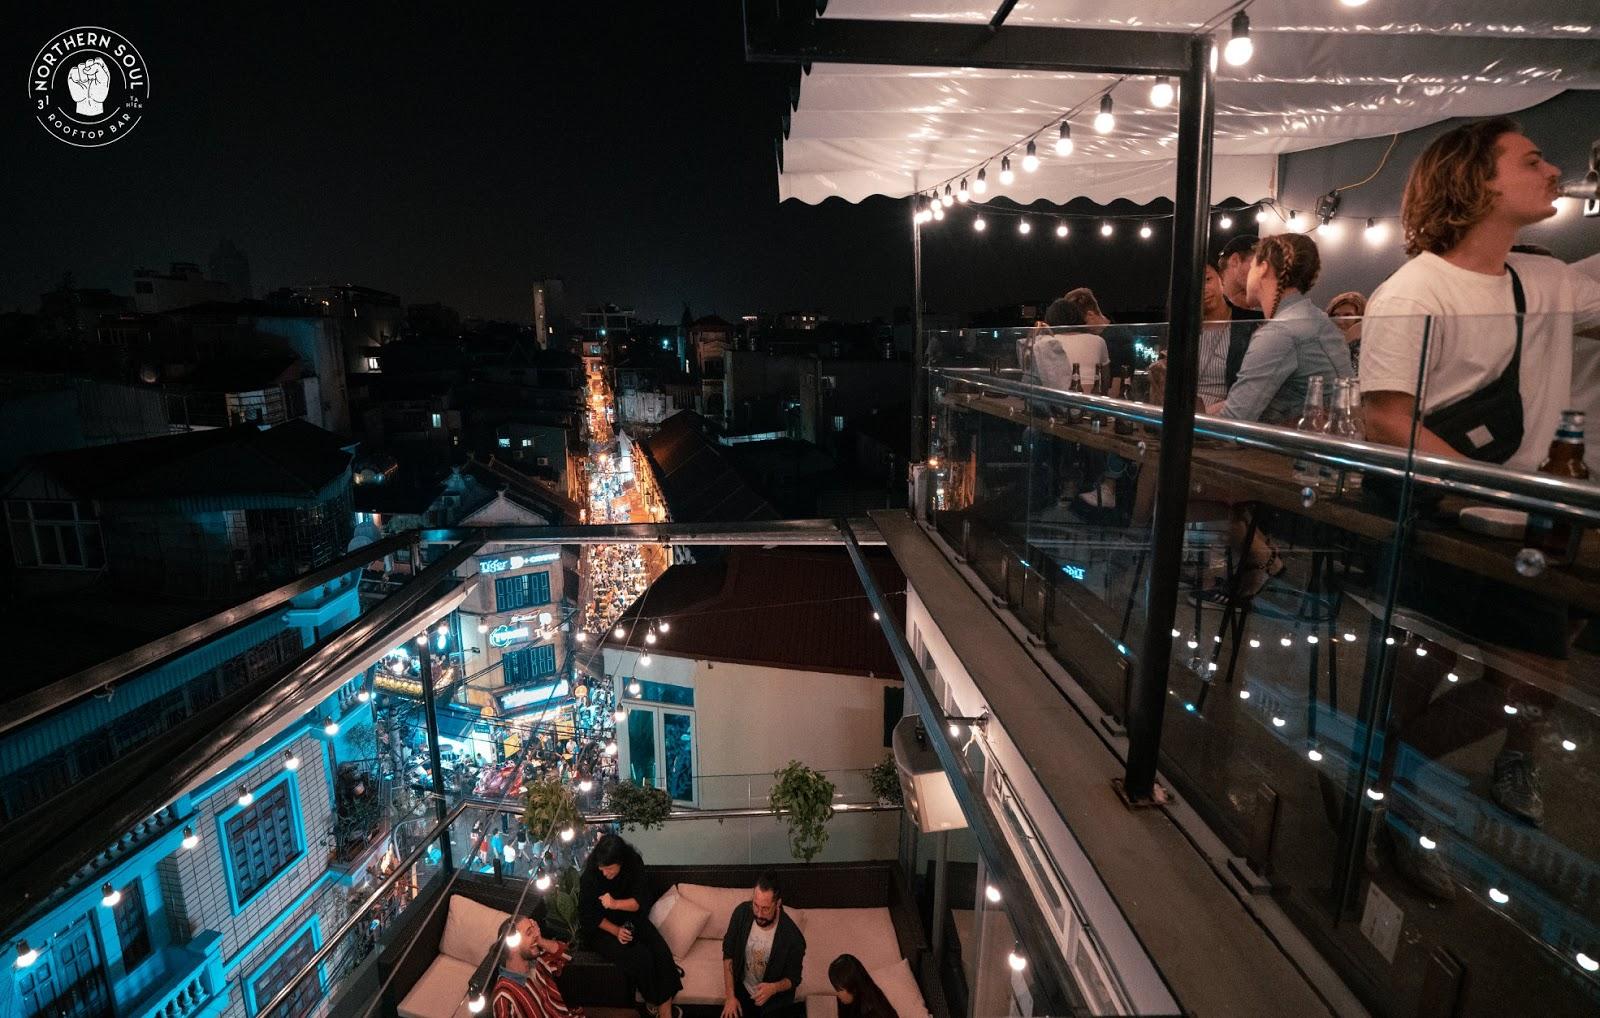 hanoi old quarter bars northen soul rooftop bar view